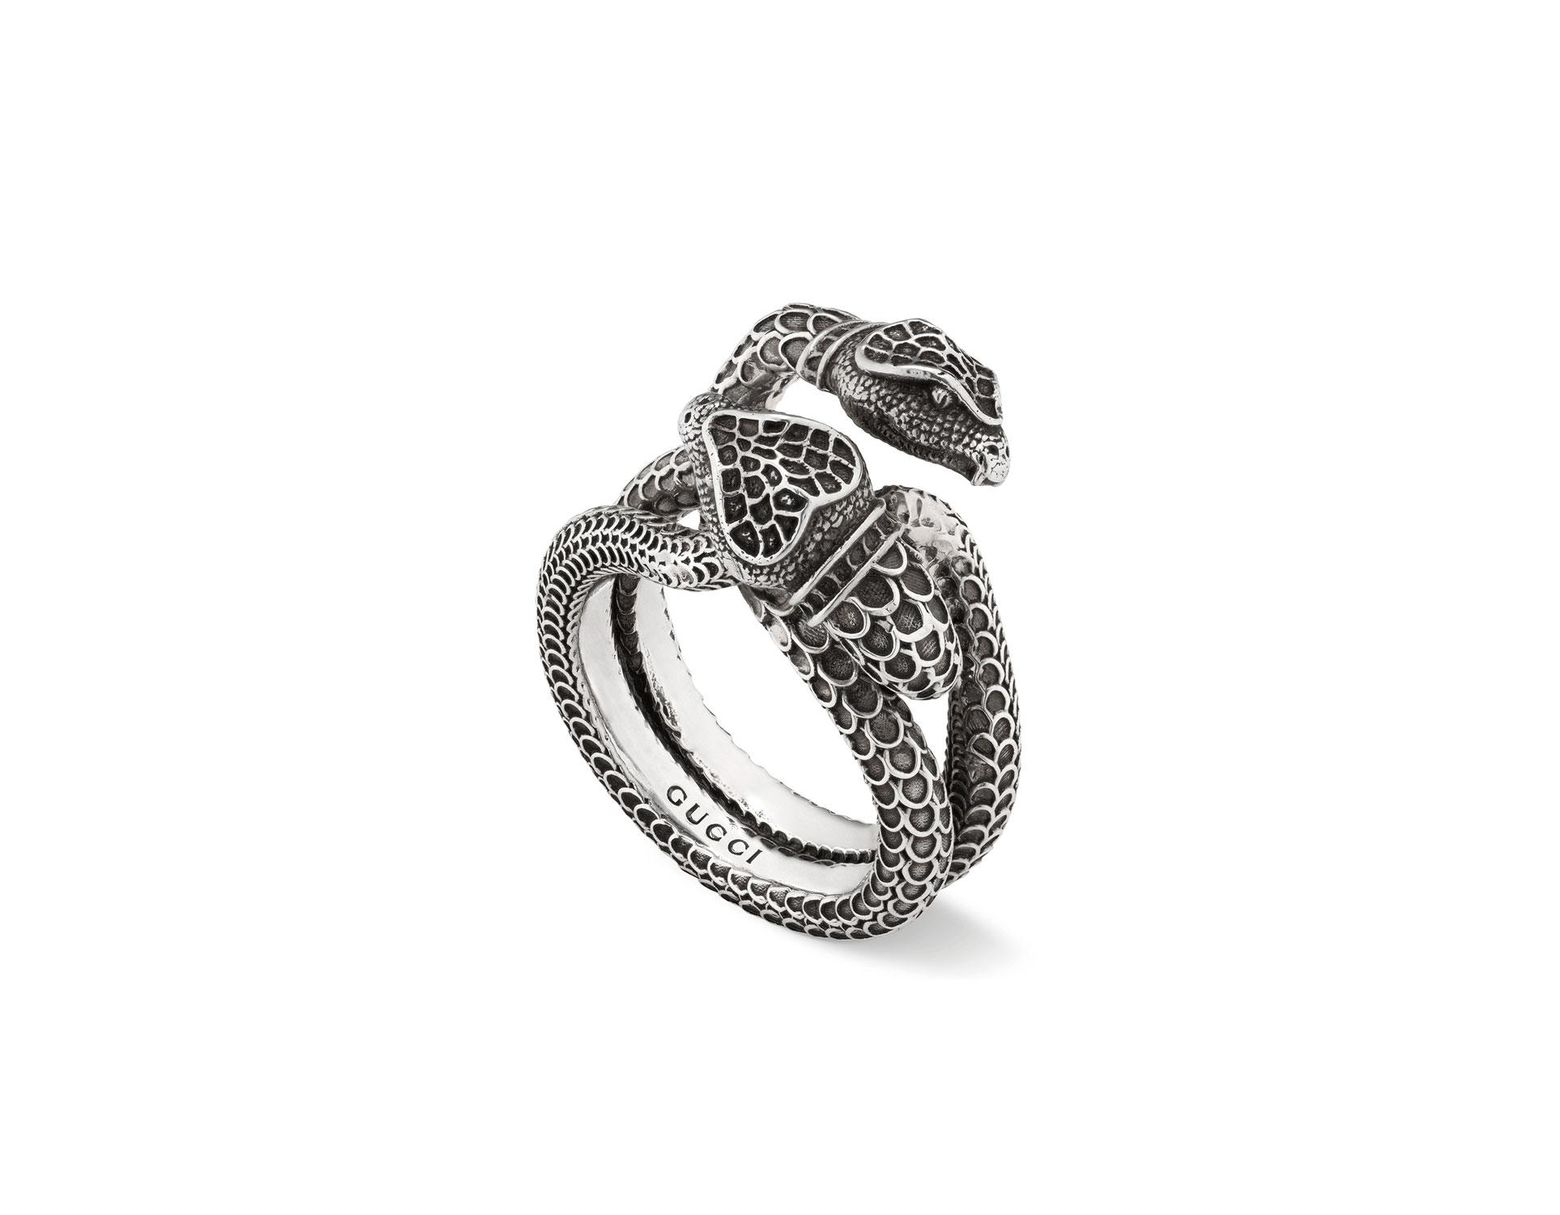 cadc91aa5 Gucci Men's Engraved Snake Ring in Metallic for Men - Lyst